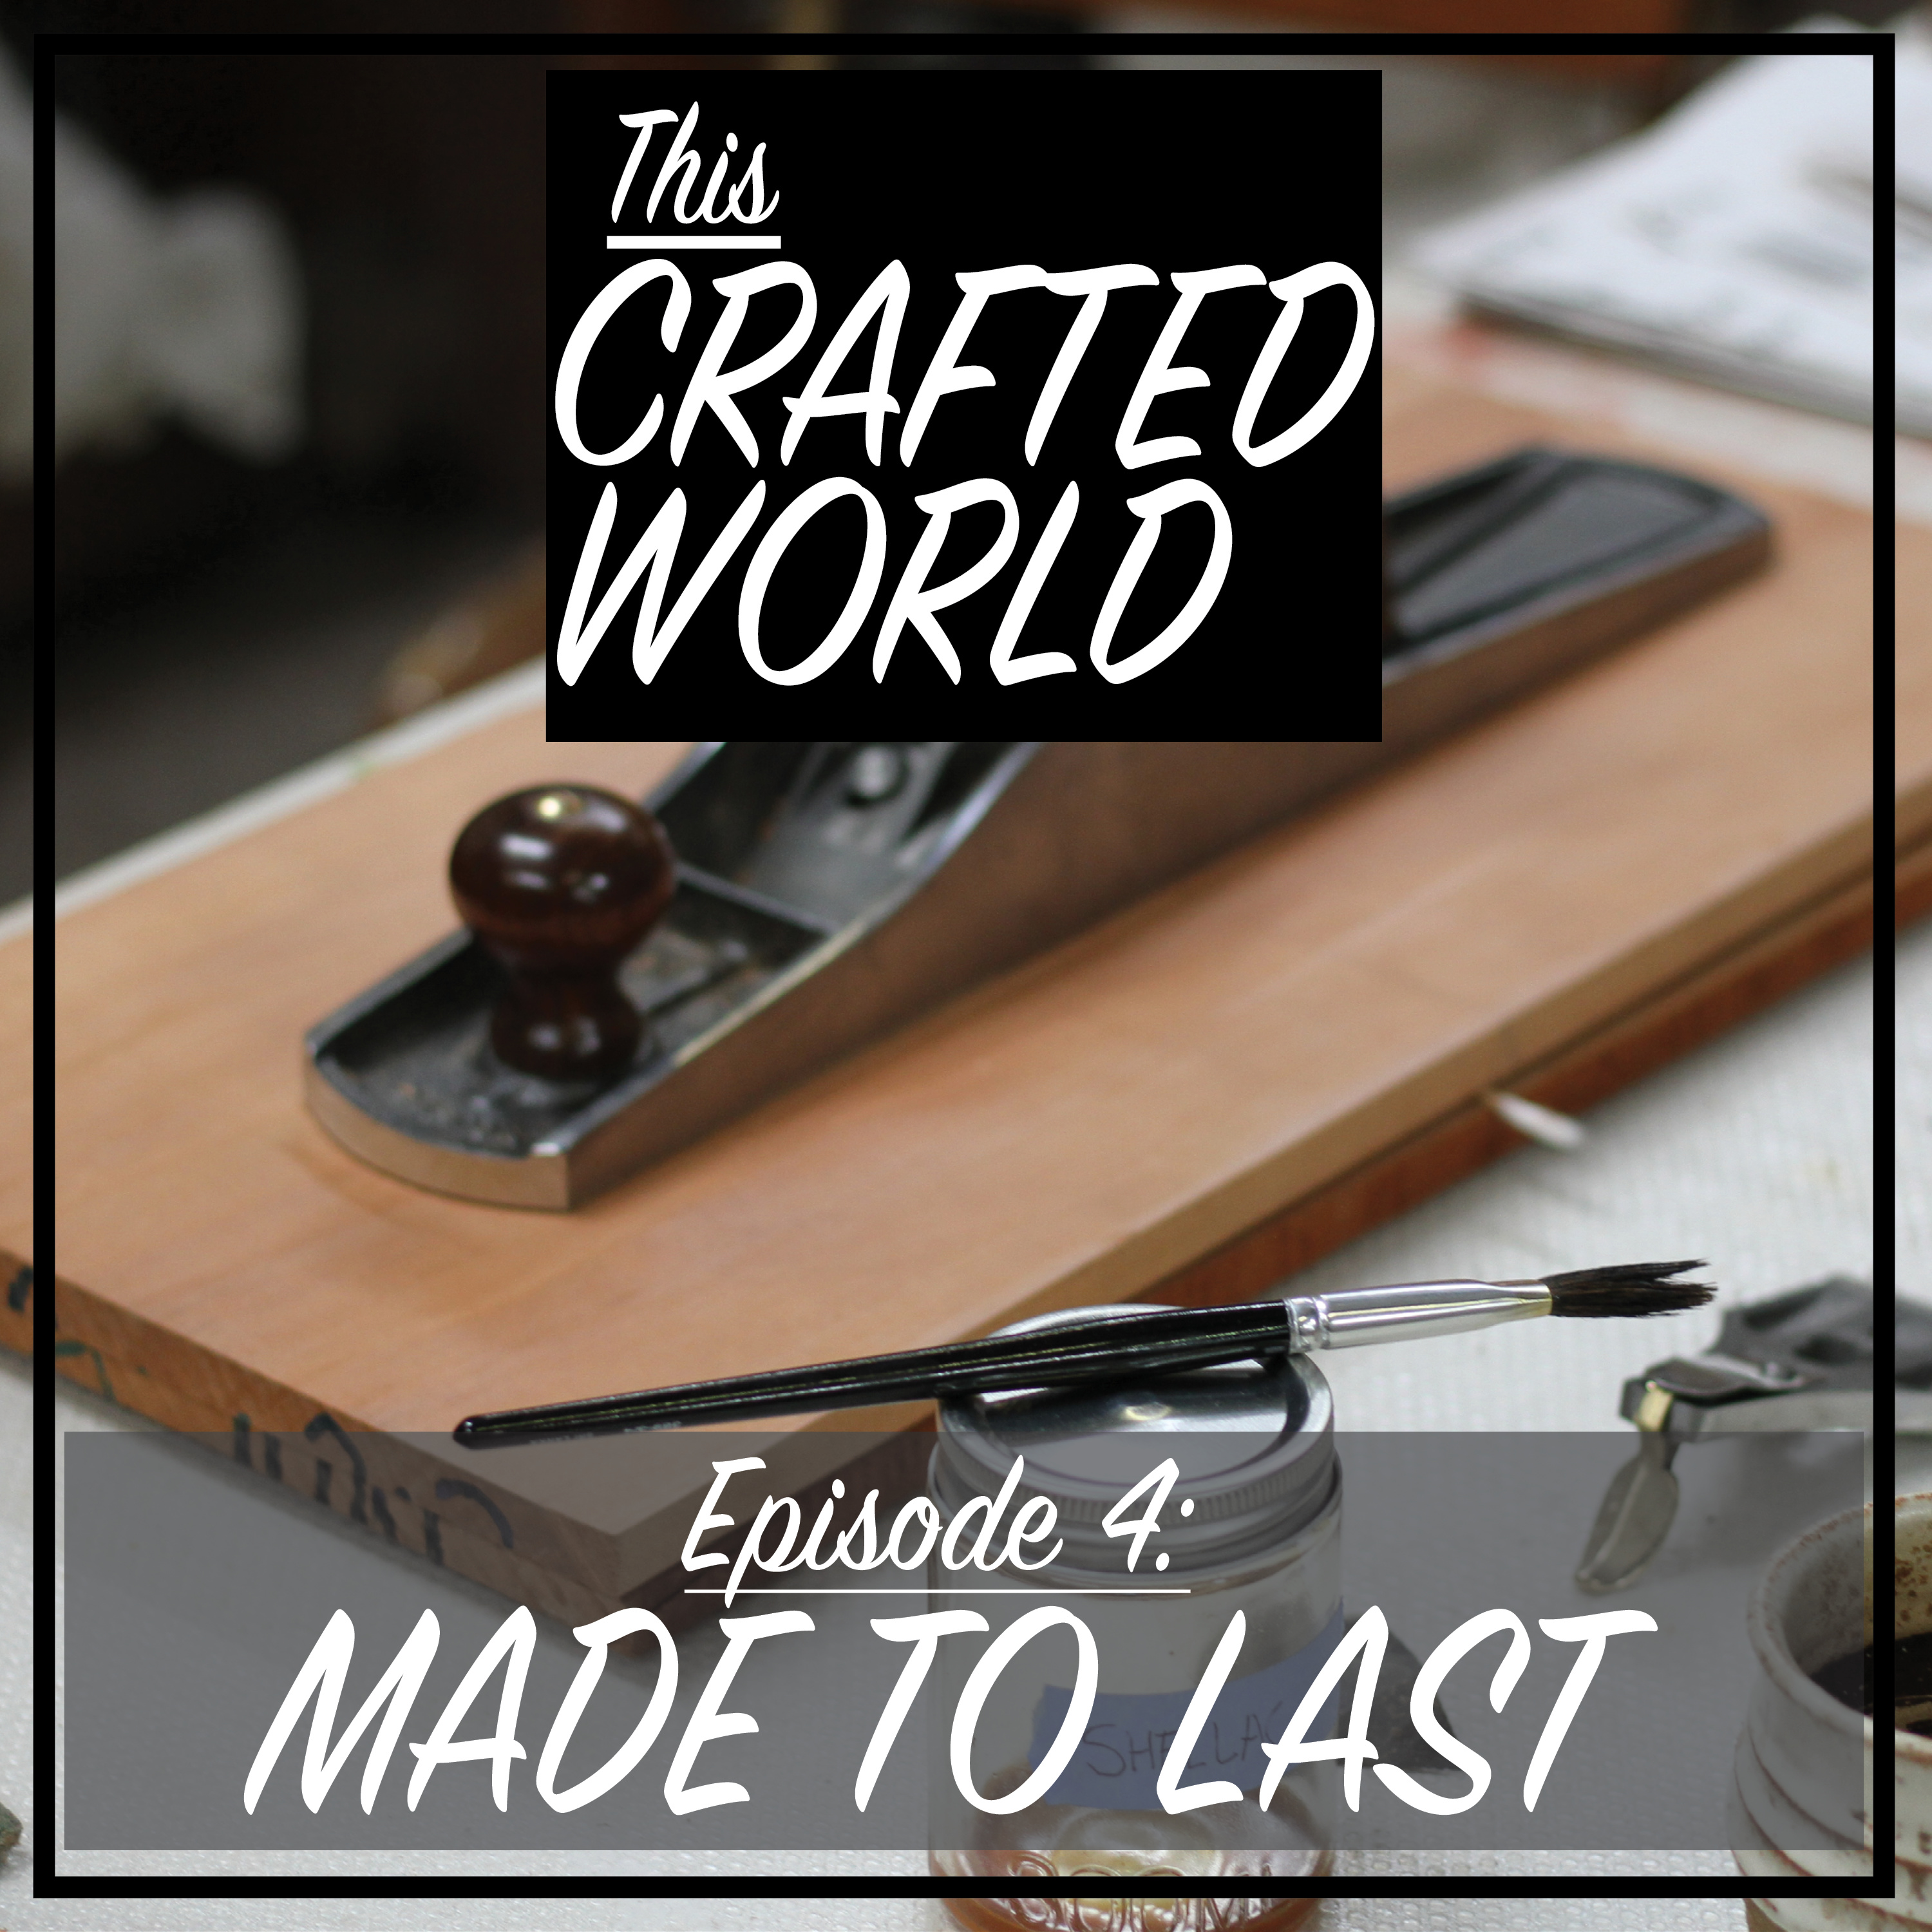 Episode 4: Made to Last